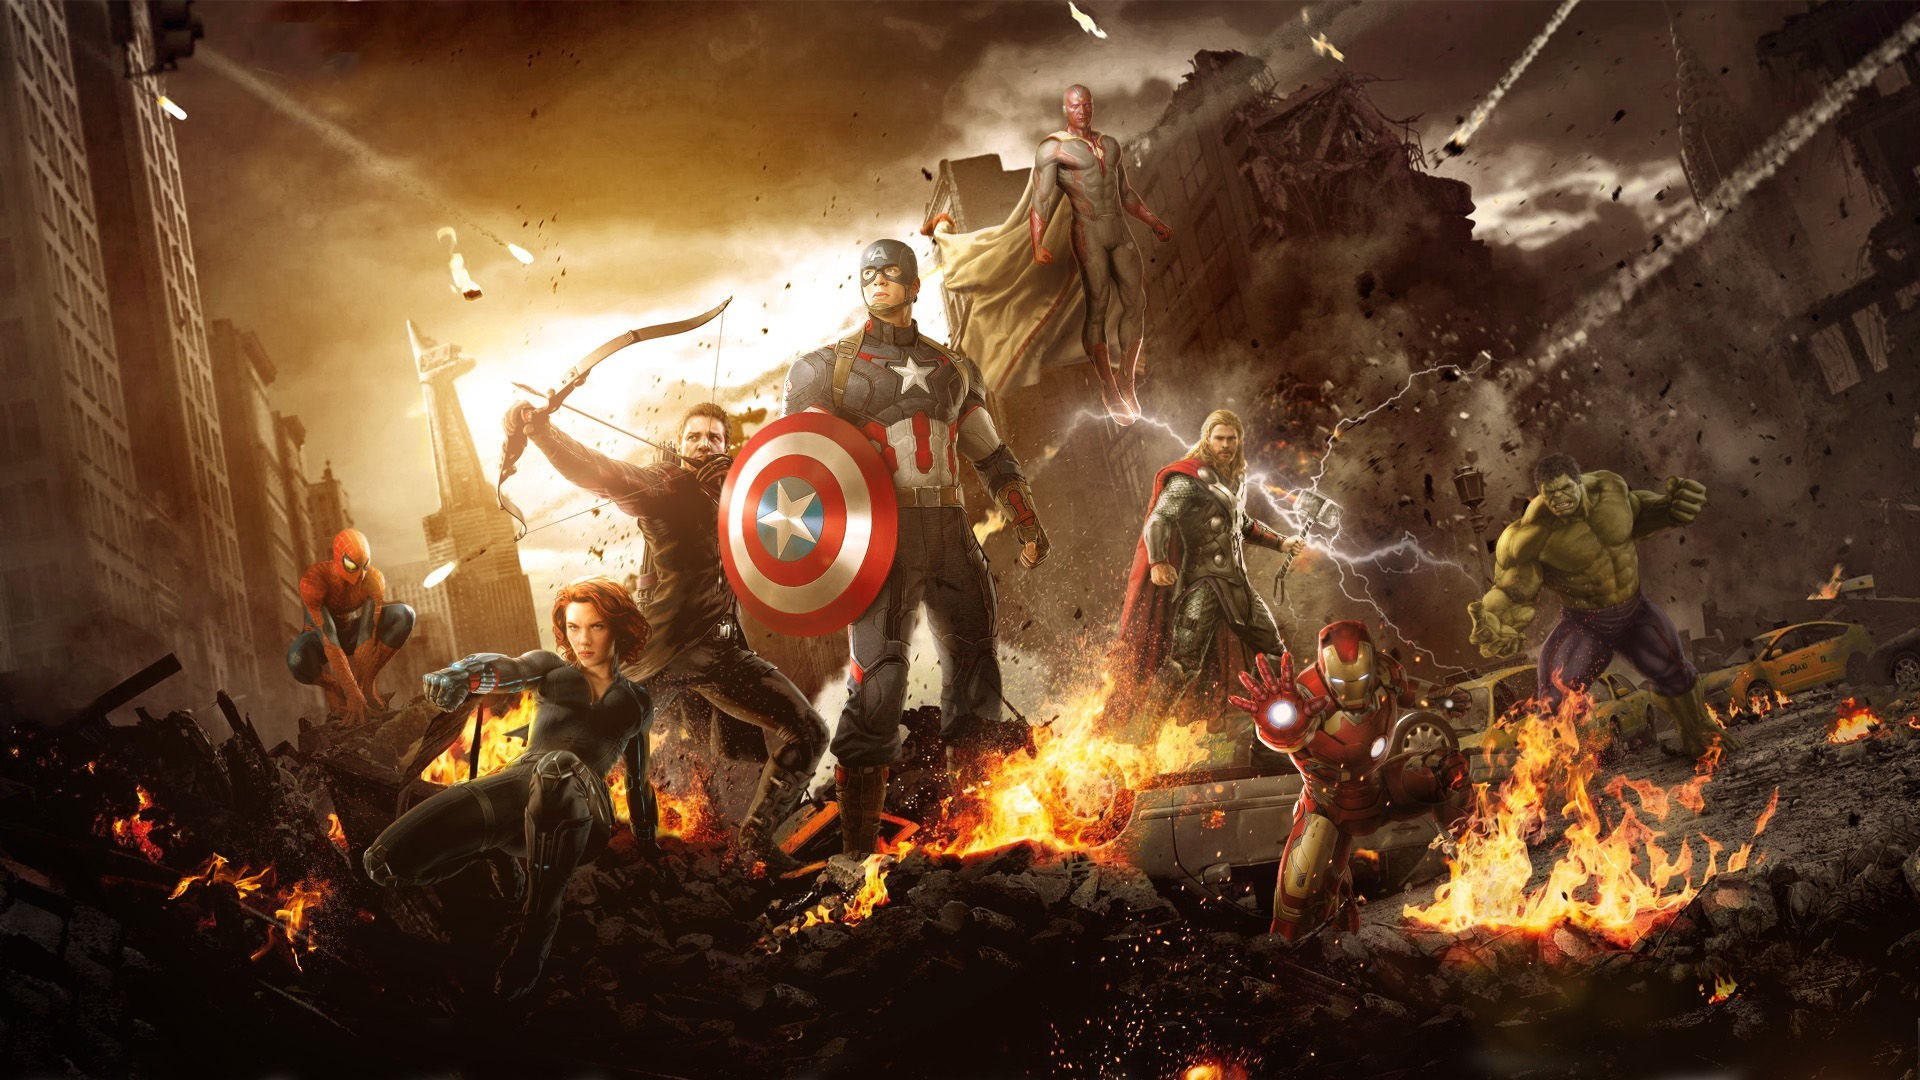 avengers hd wallpapers 1080p high quality